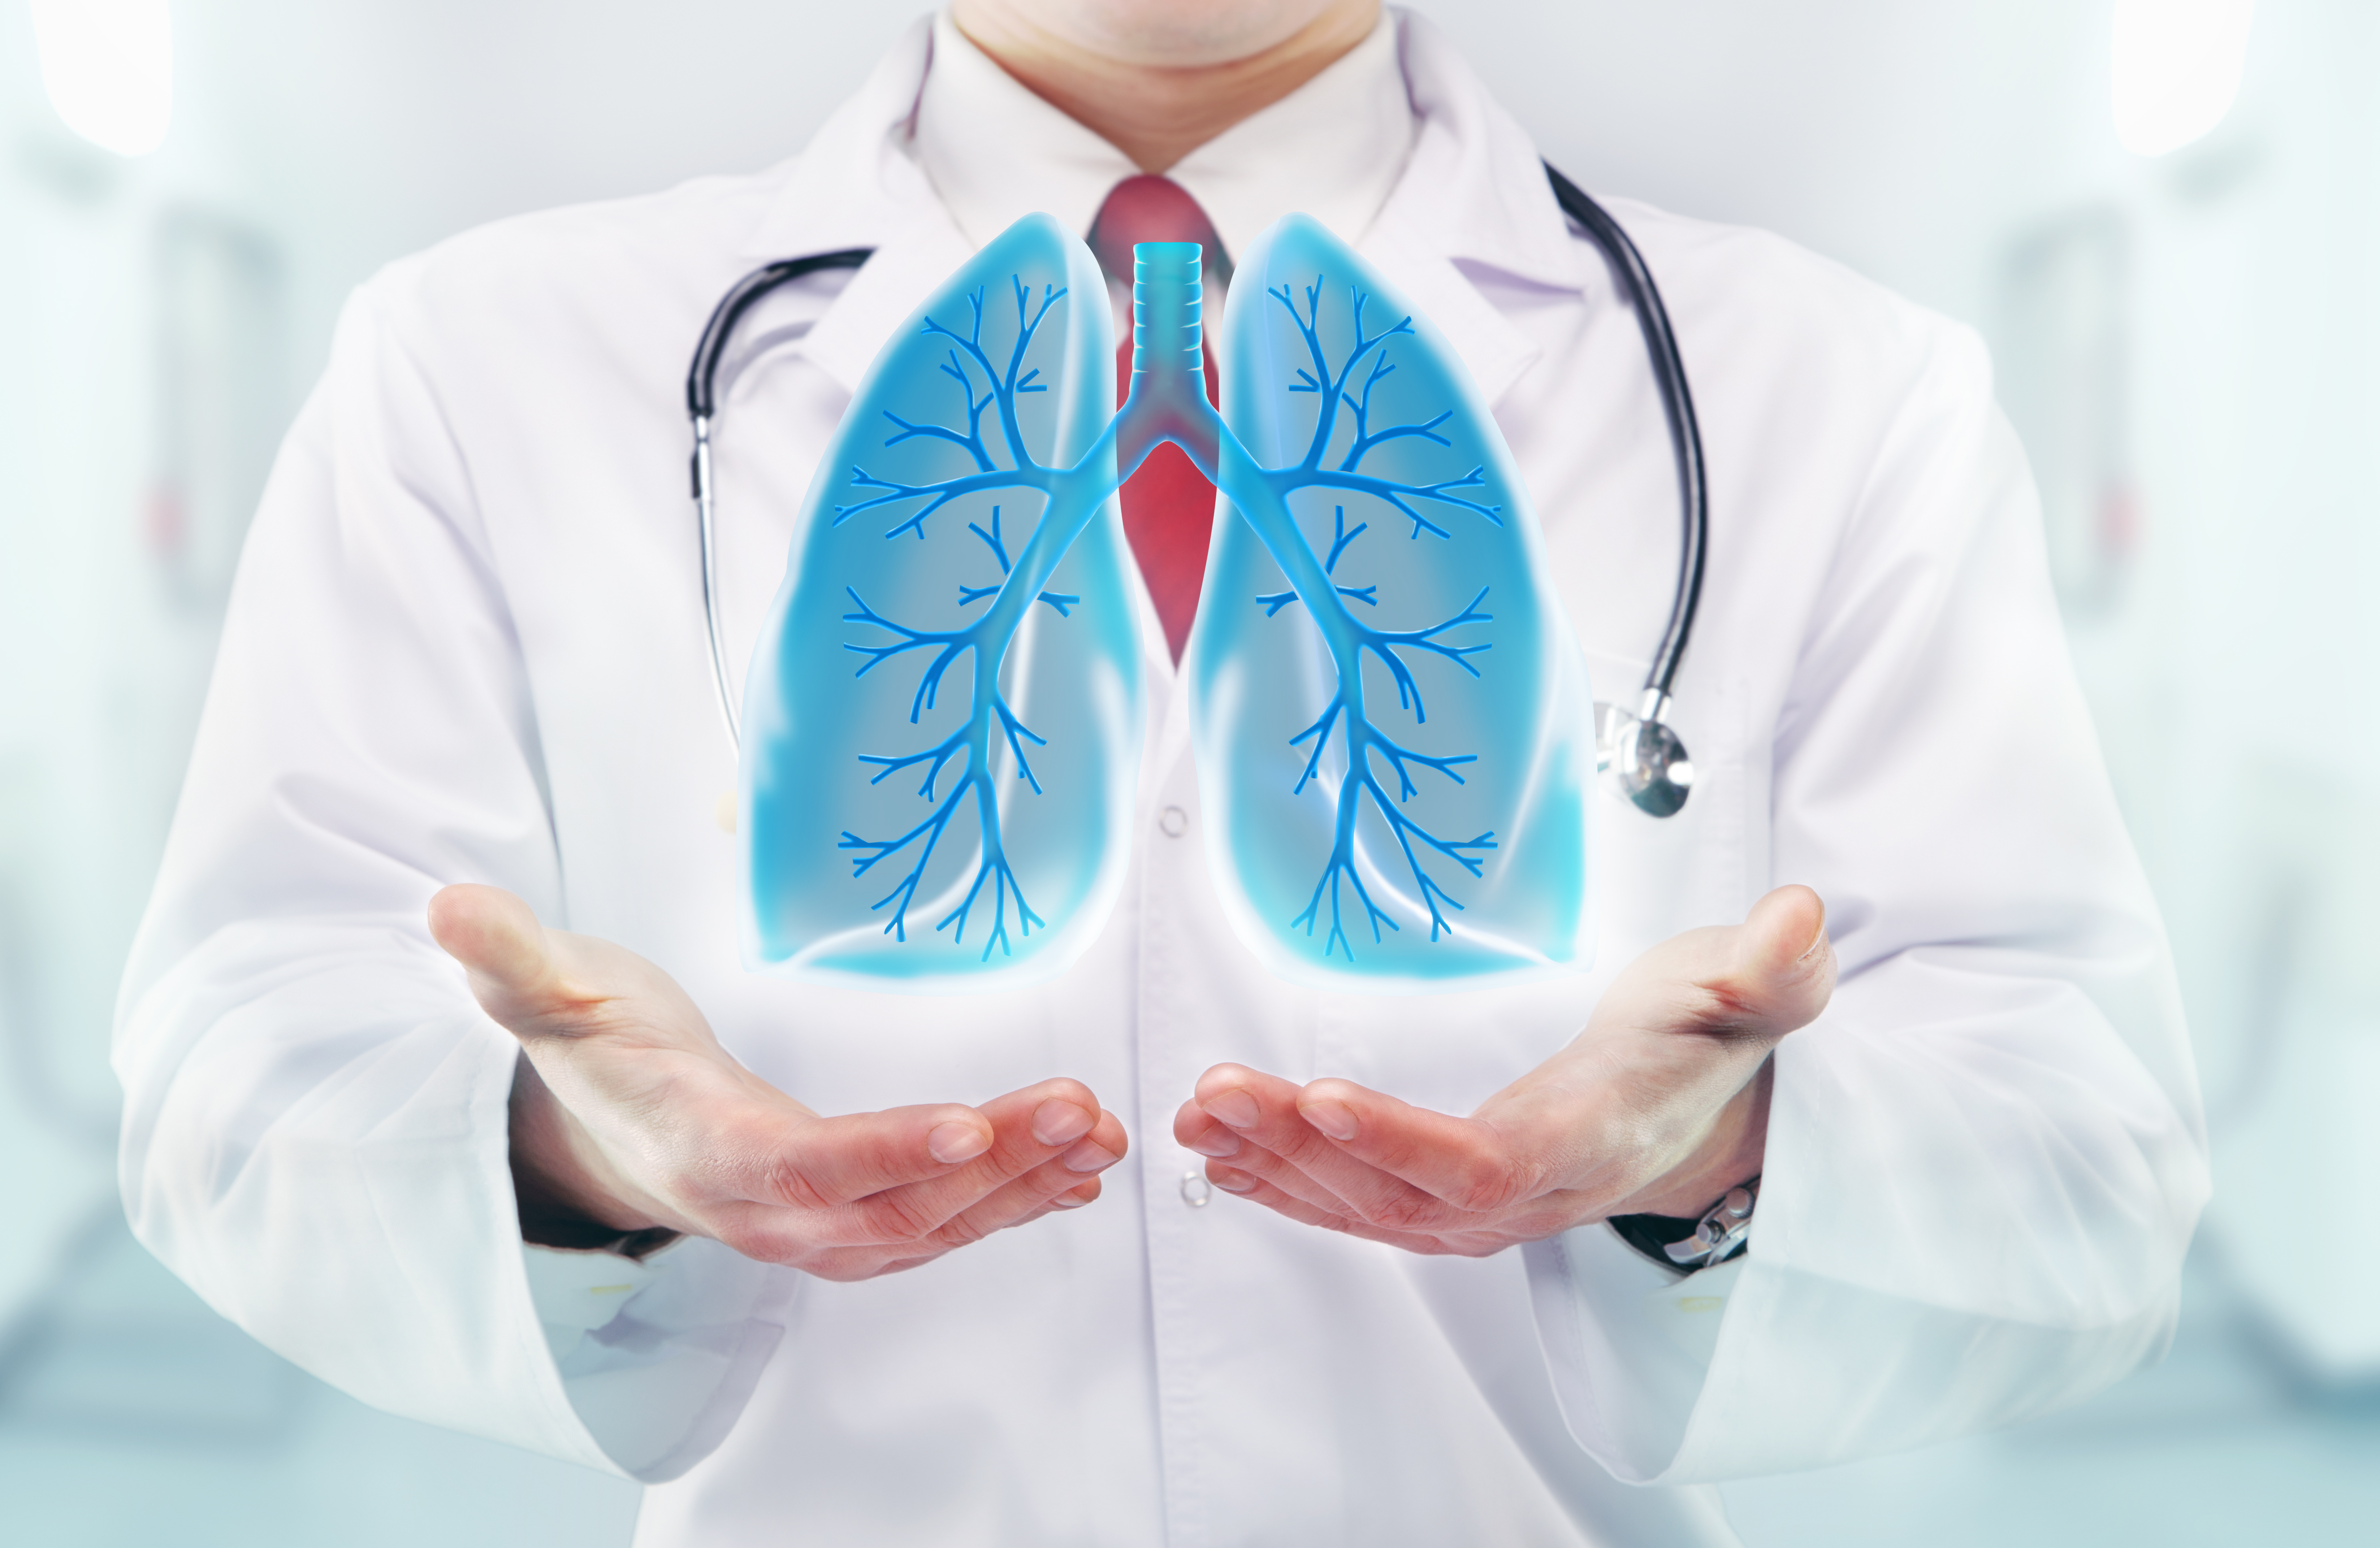 Clinical trial results of RPL554 for COPD